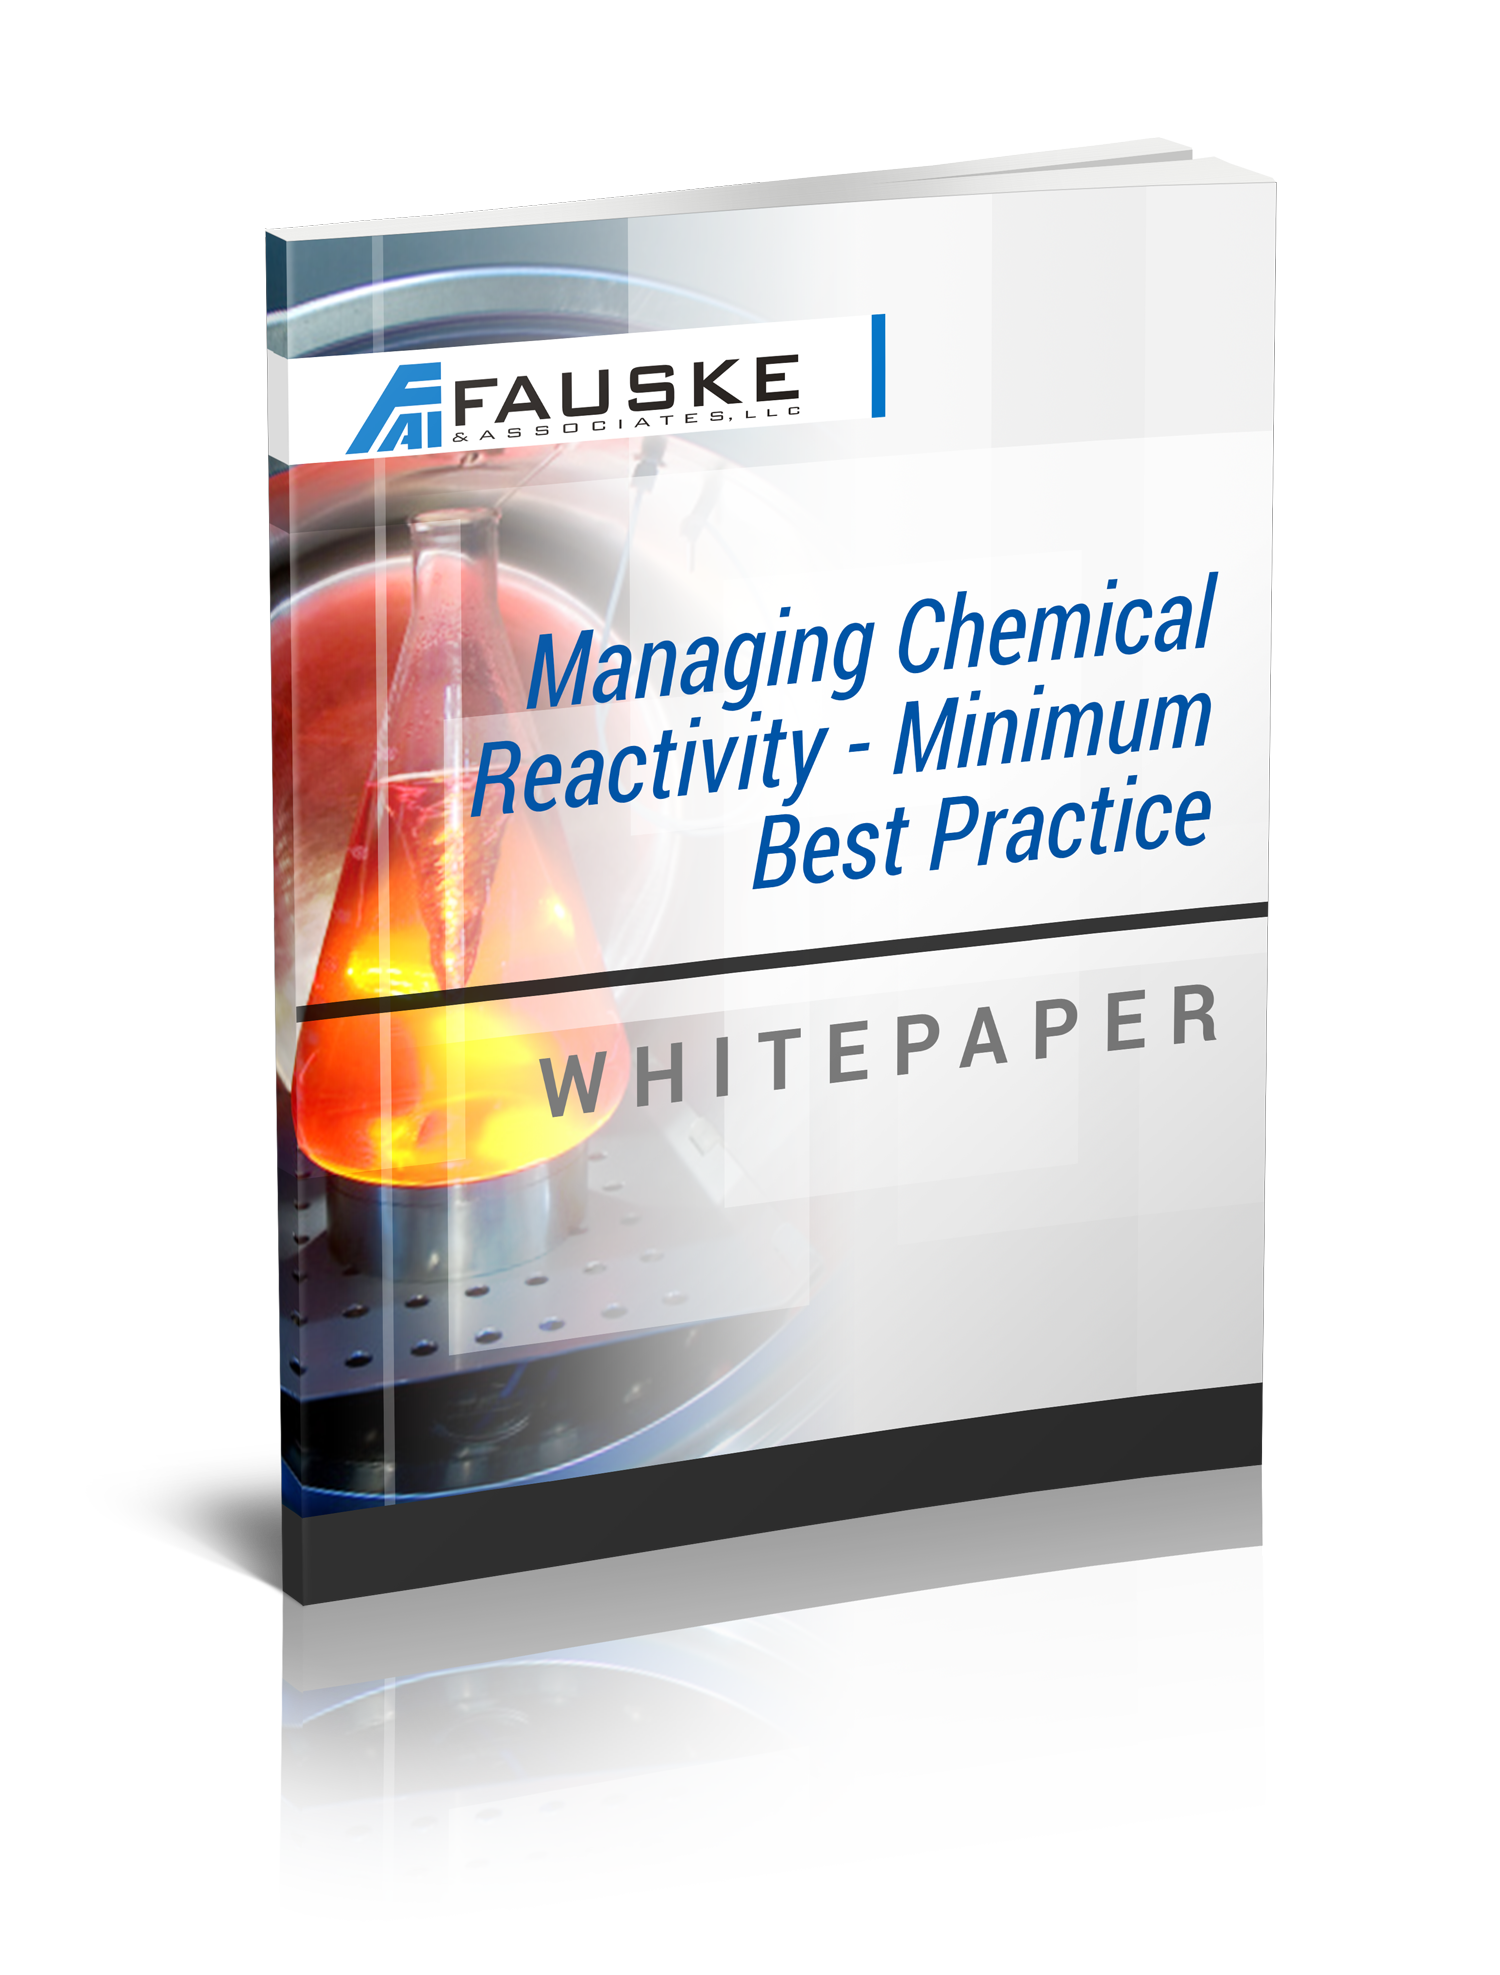 fauske-wp-managing-chemical-reactivity.png